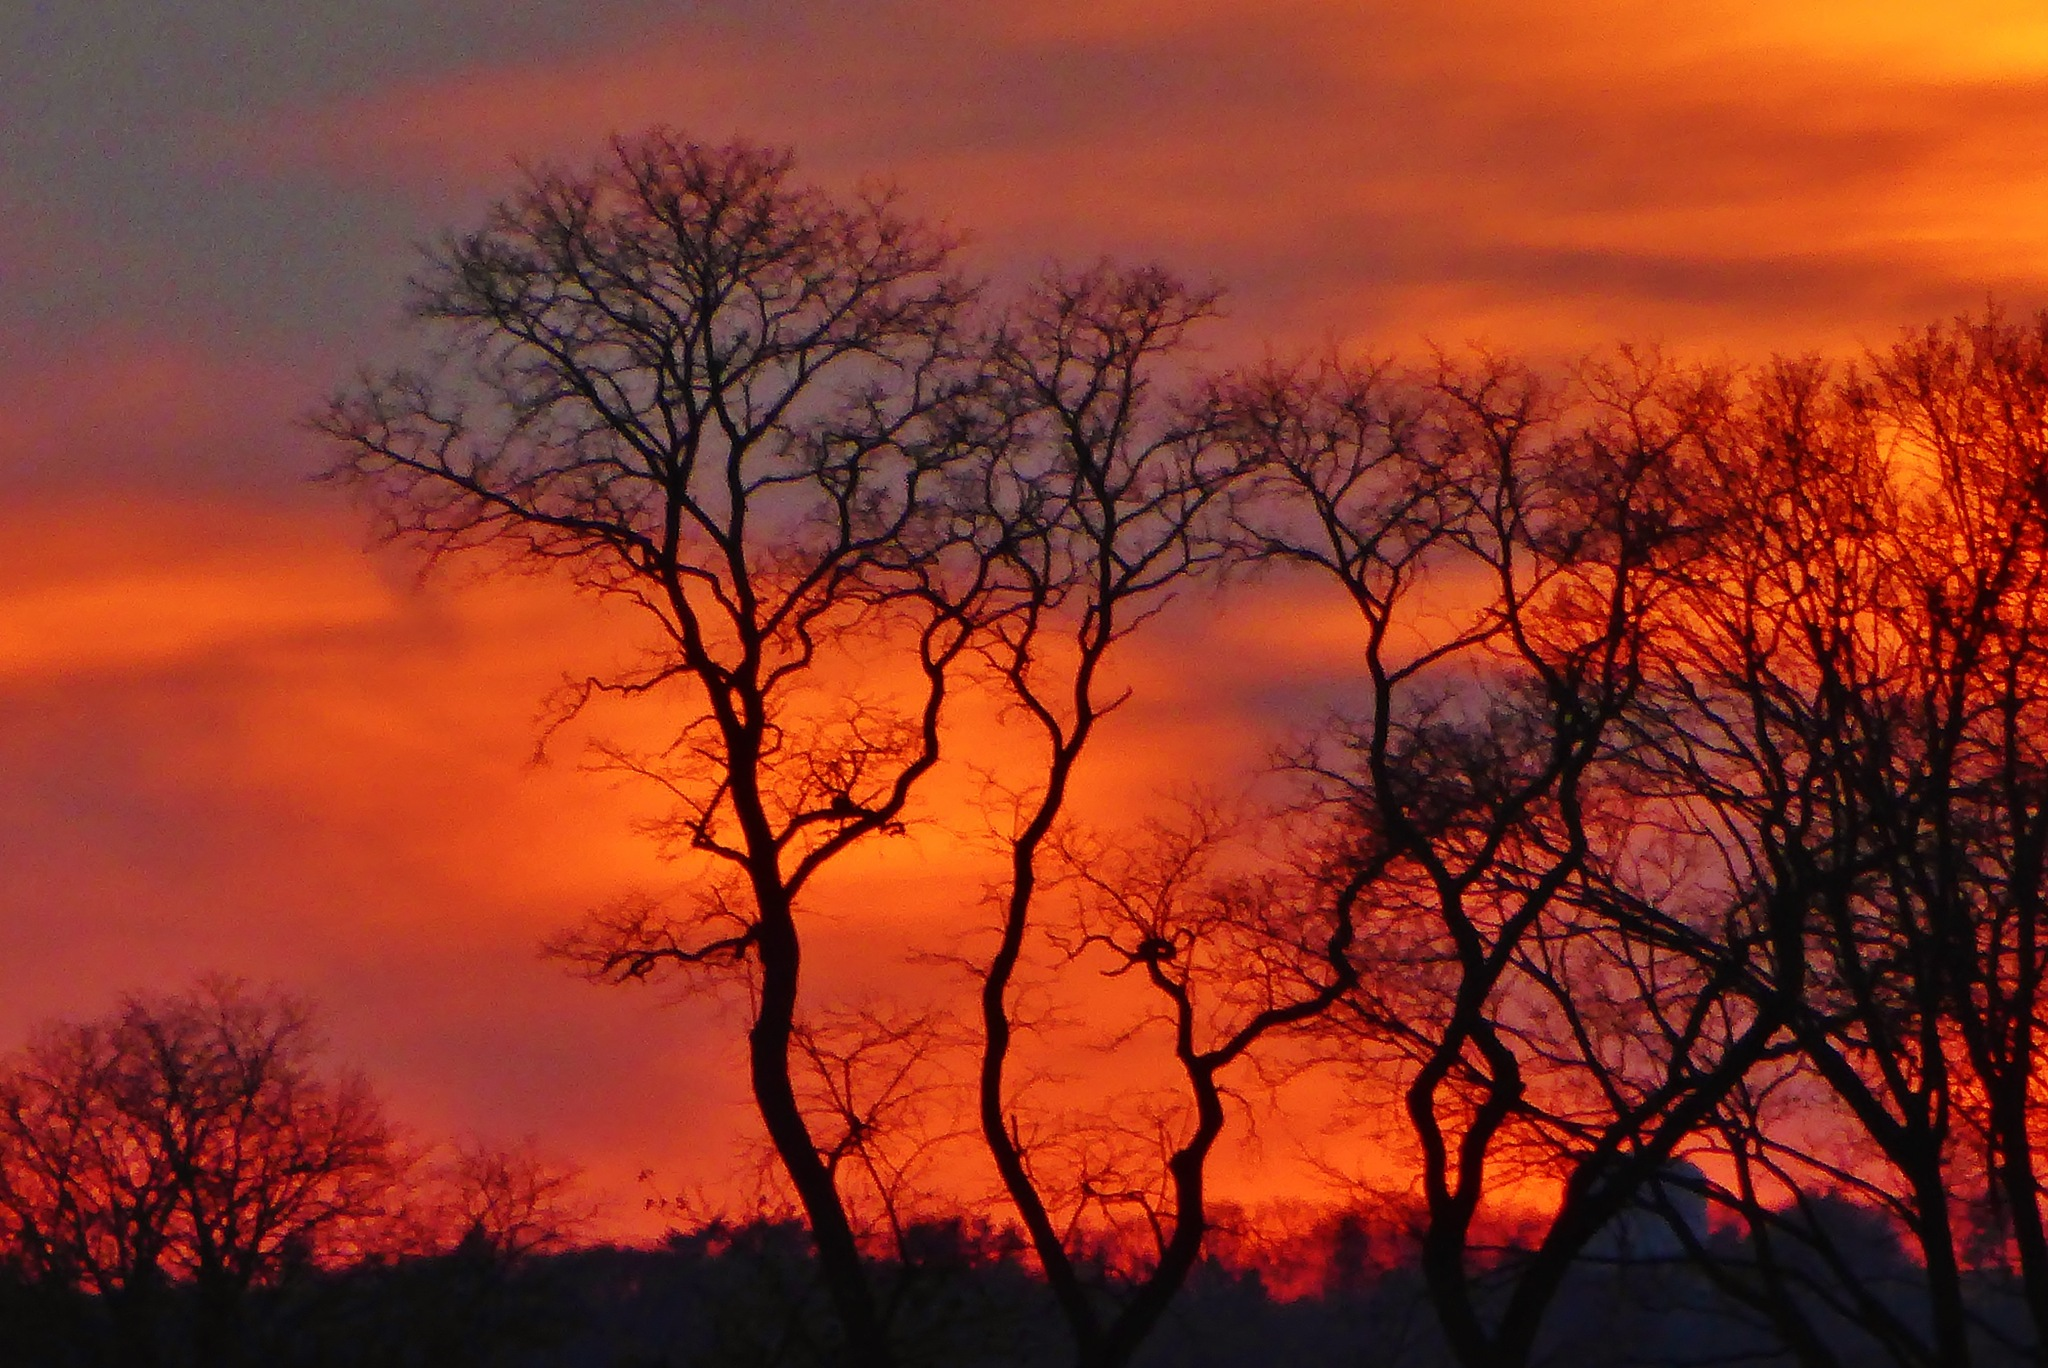 Sunset Silhouette by D. Scott Hufford